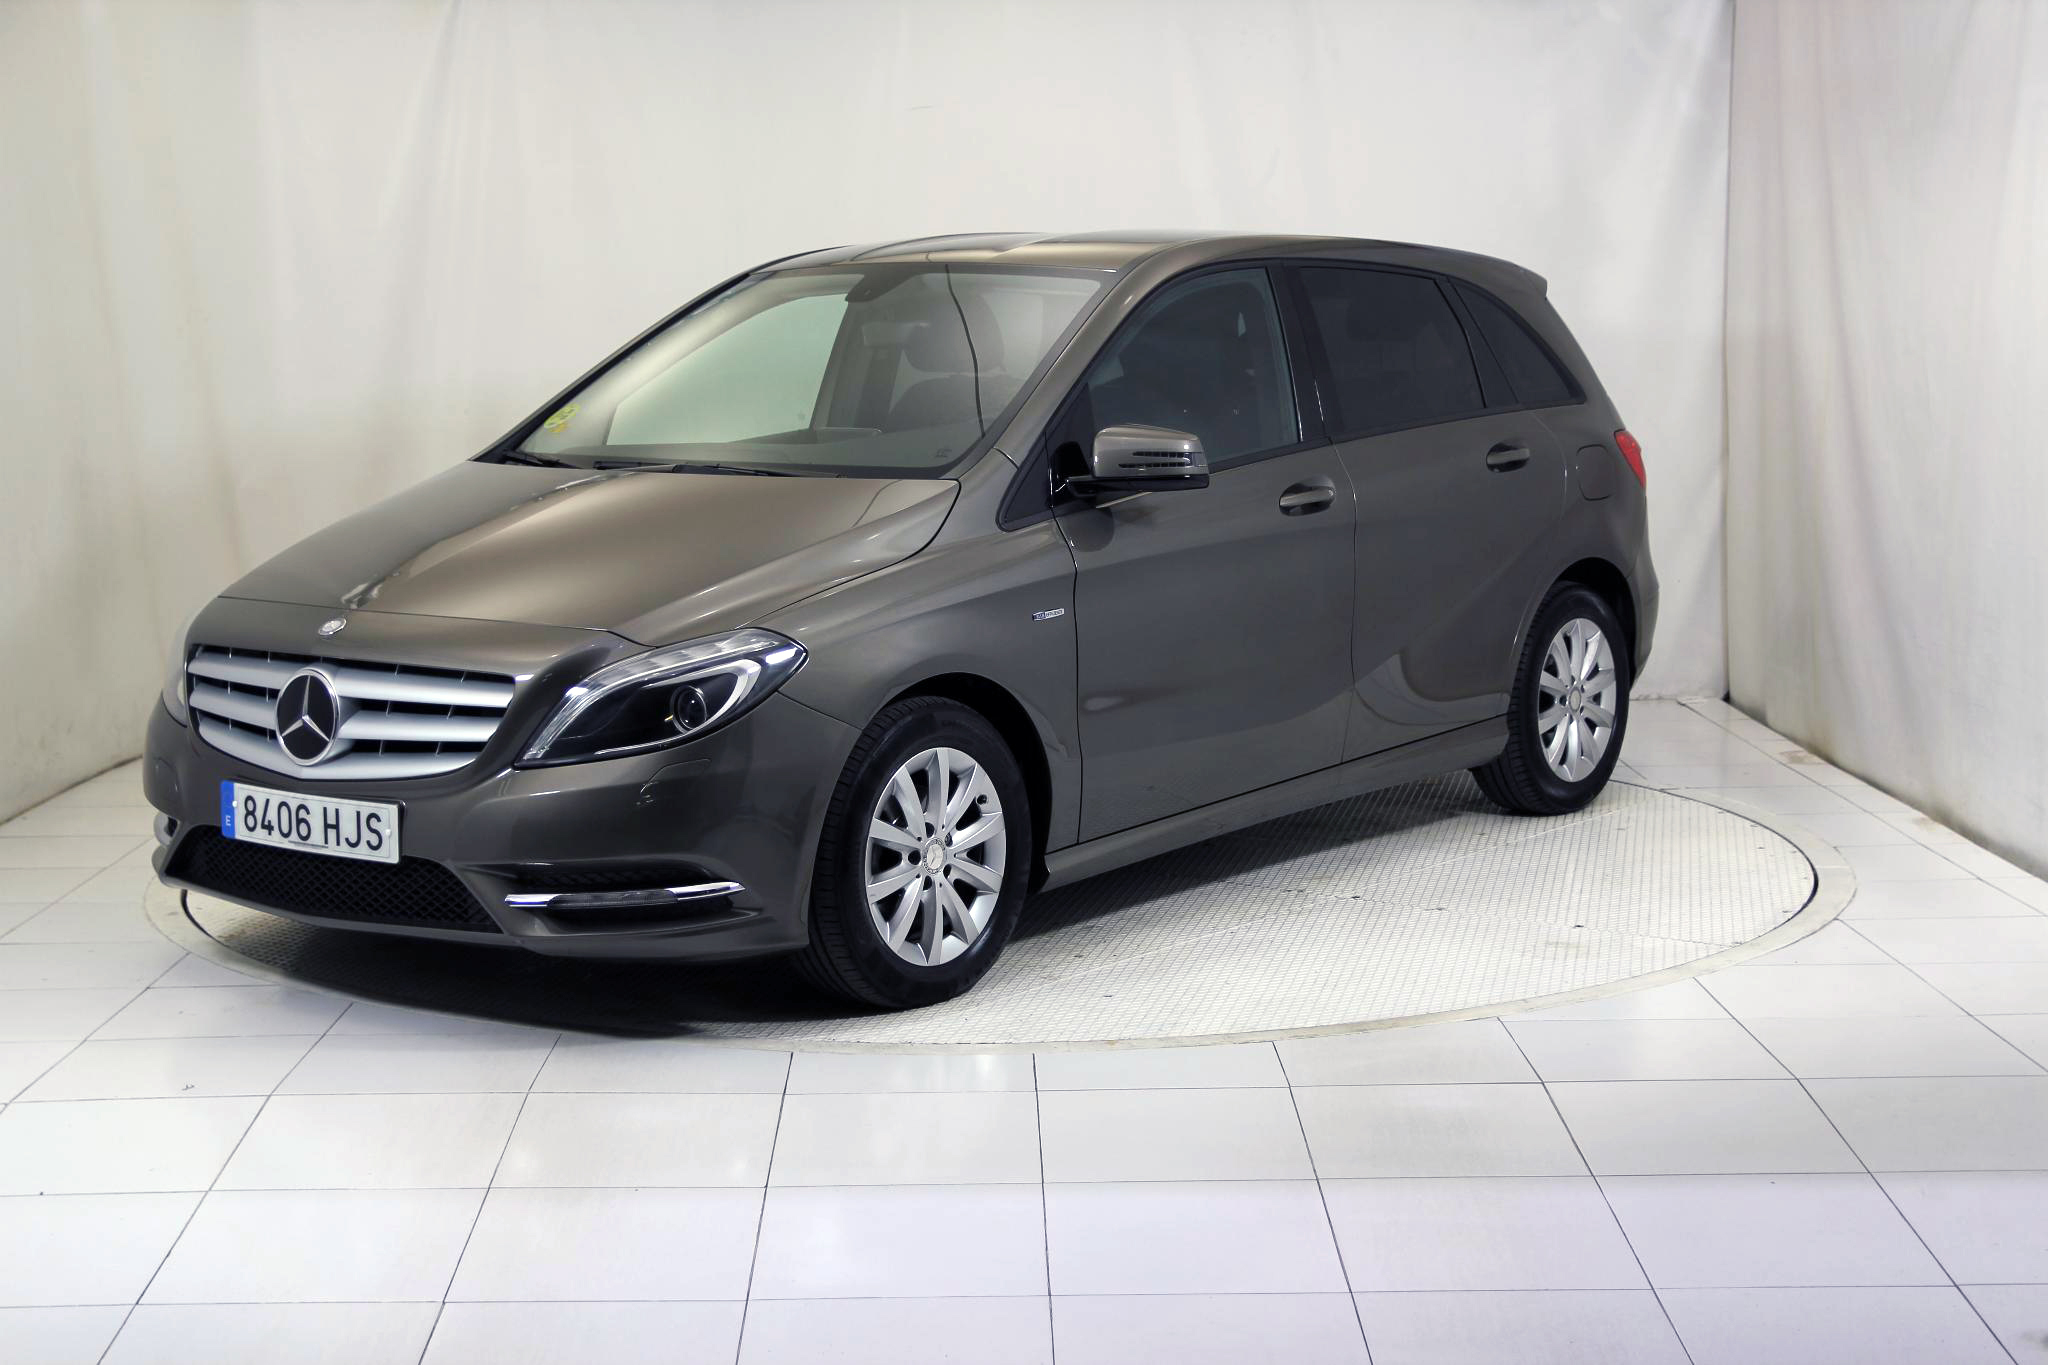 Mercedes-Benz Clase B CLASE B 180 CDI BLUE EFFICIENCY 5P imagen 1